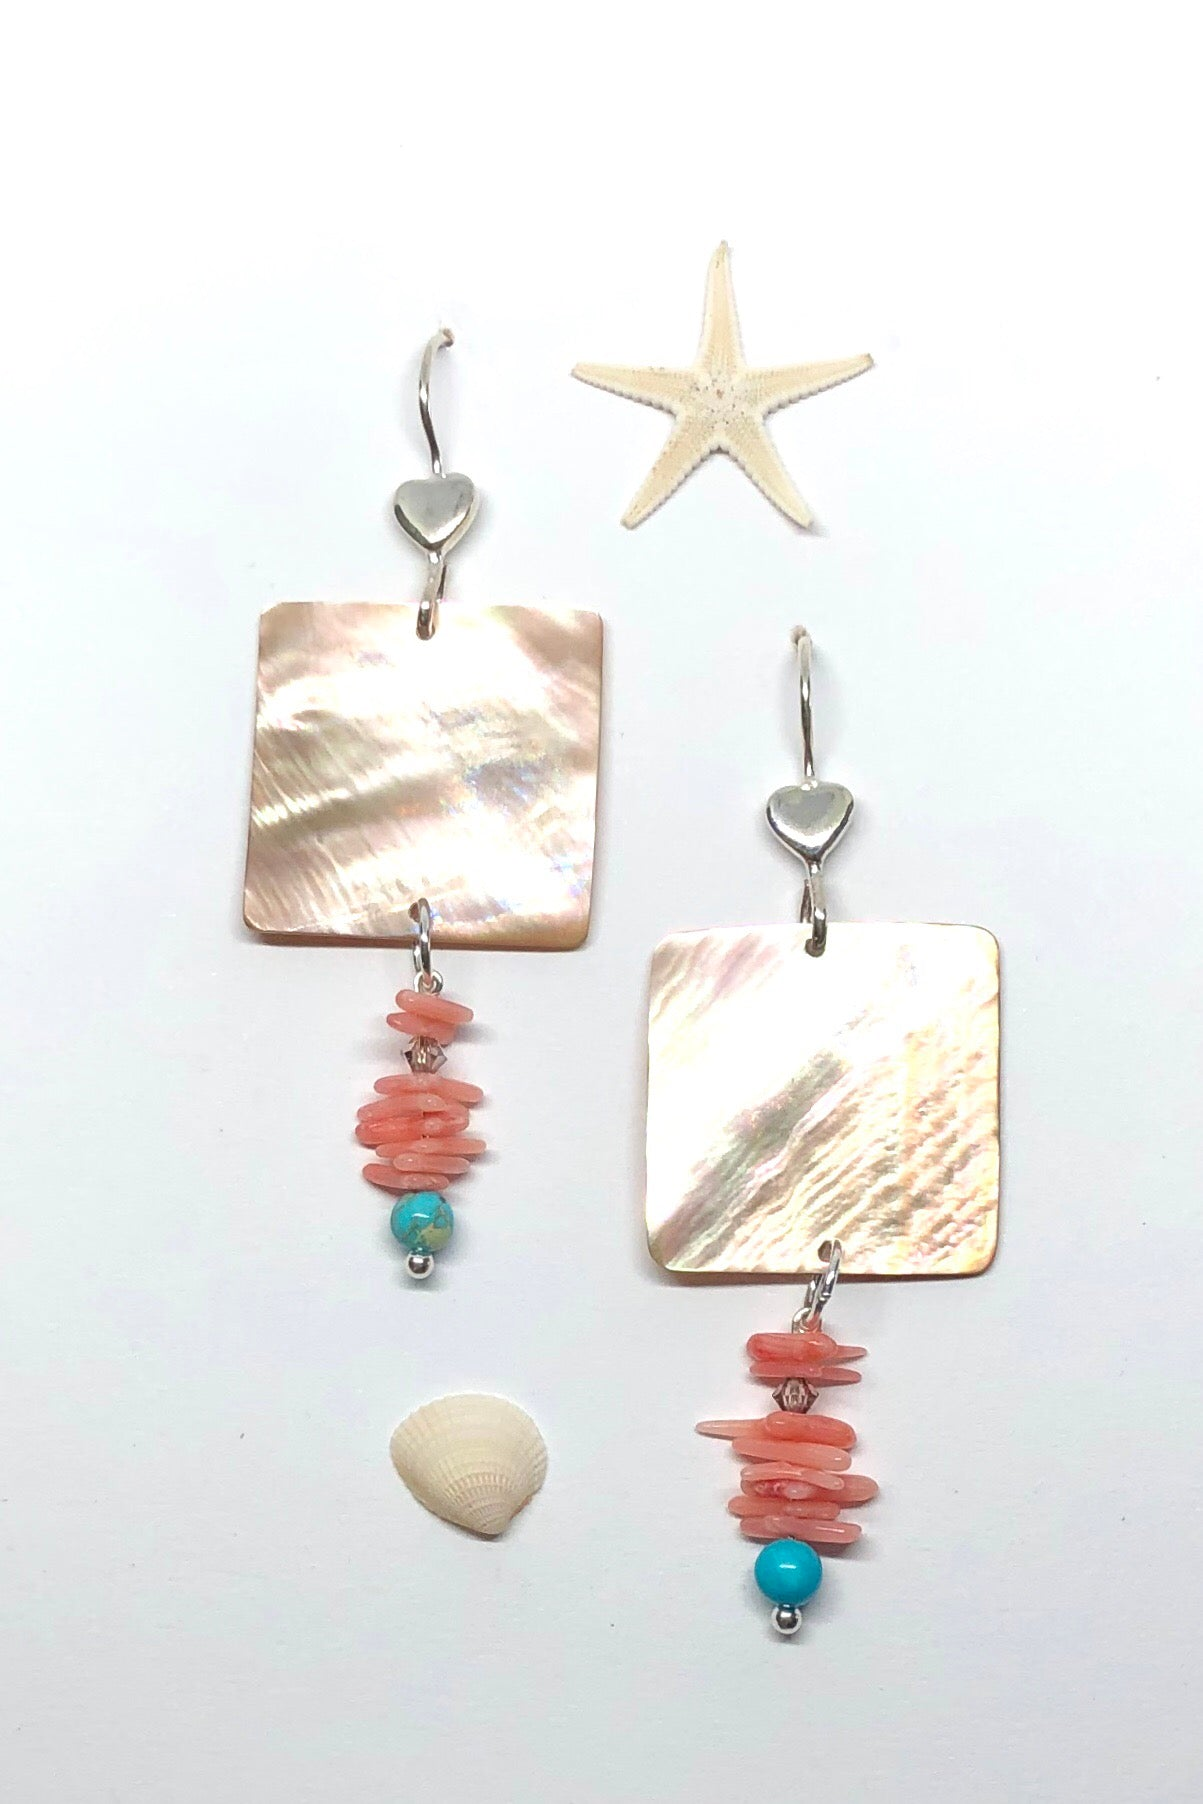 A delicately shimmering Golden mother of pearl square drop from a pretty silver hook